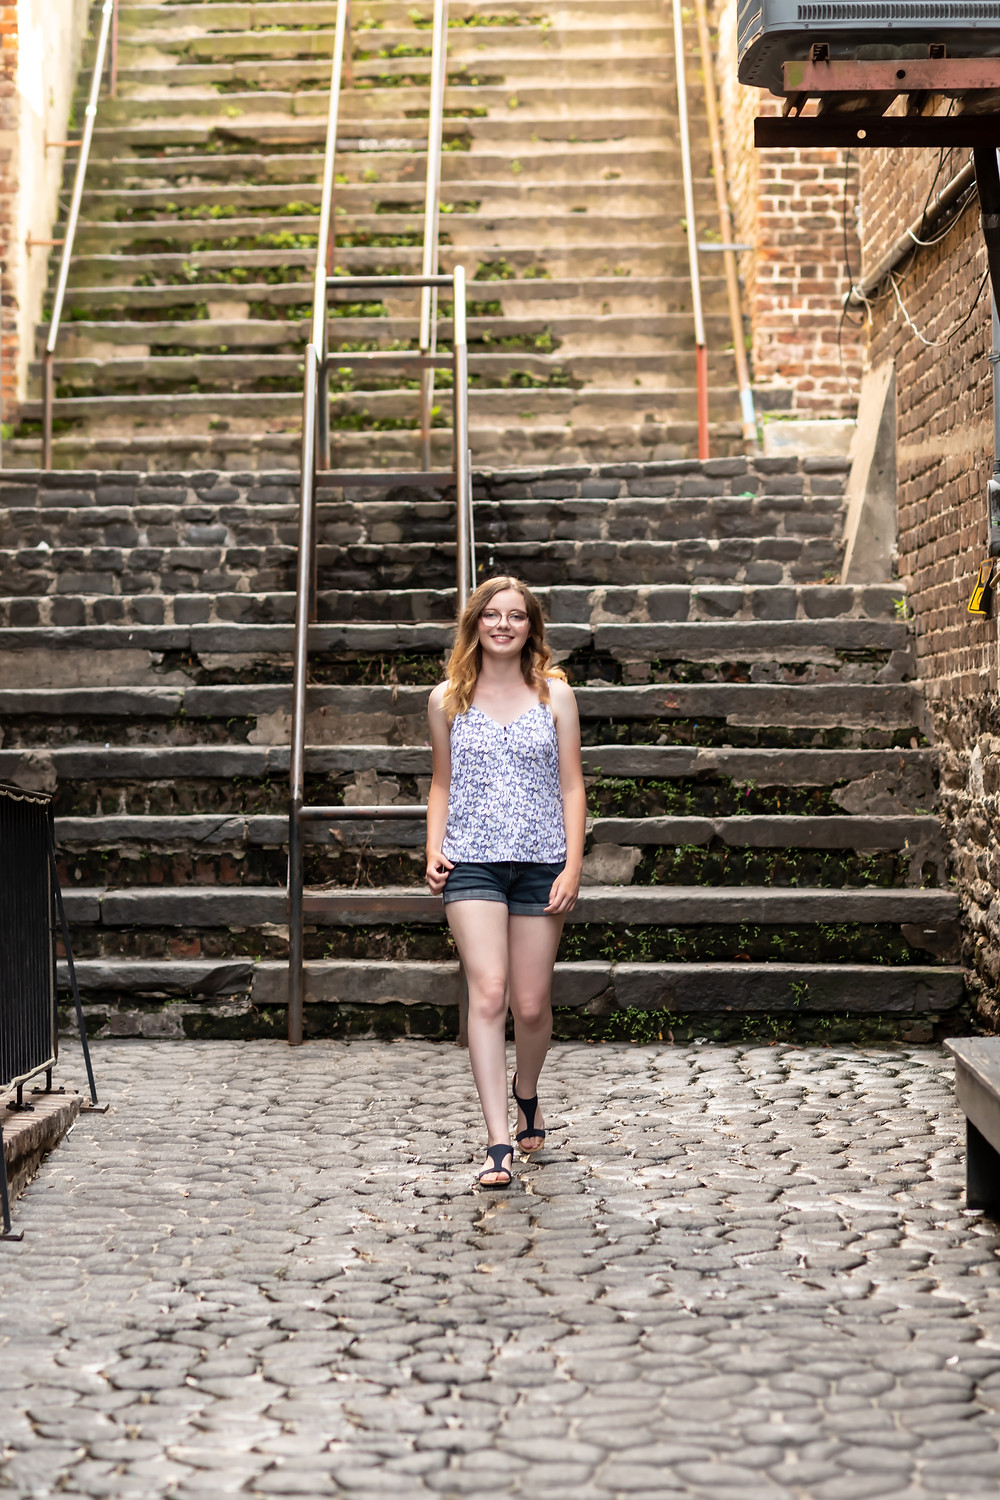 Aspen's senior portrait session in downtown Savannah, Georgia.